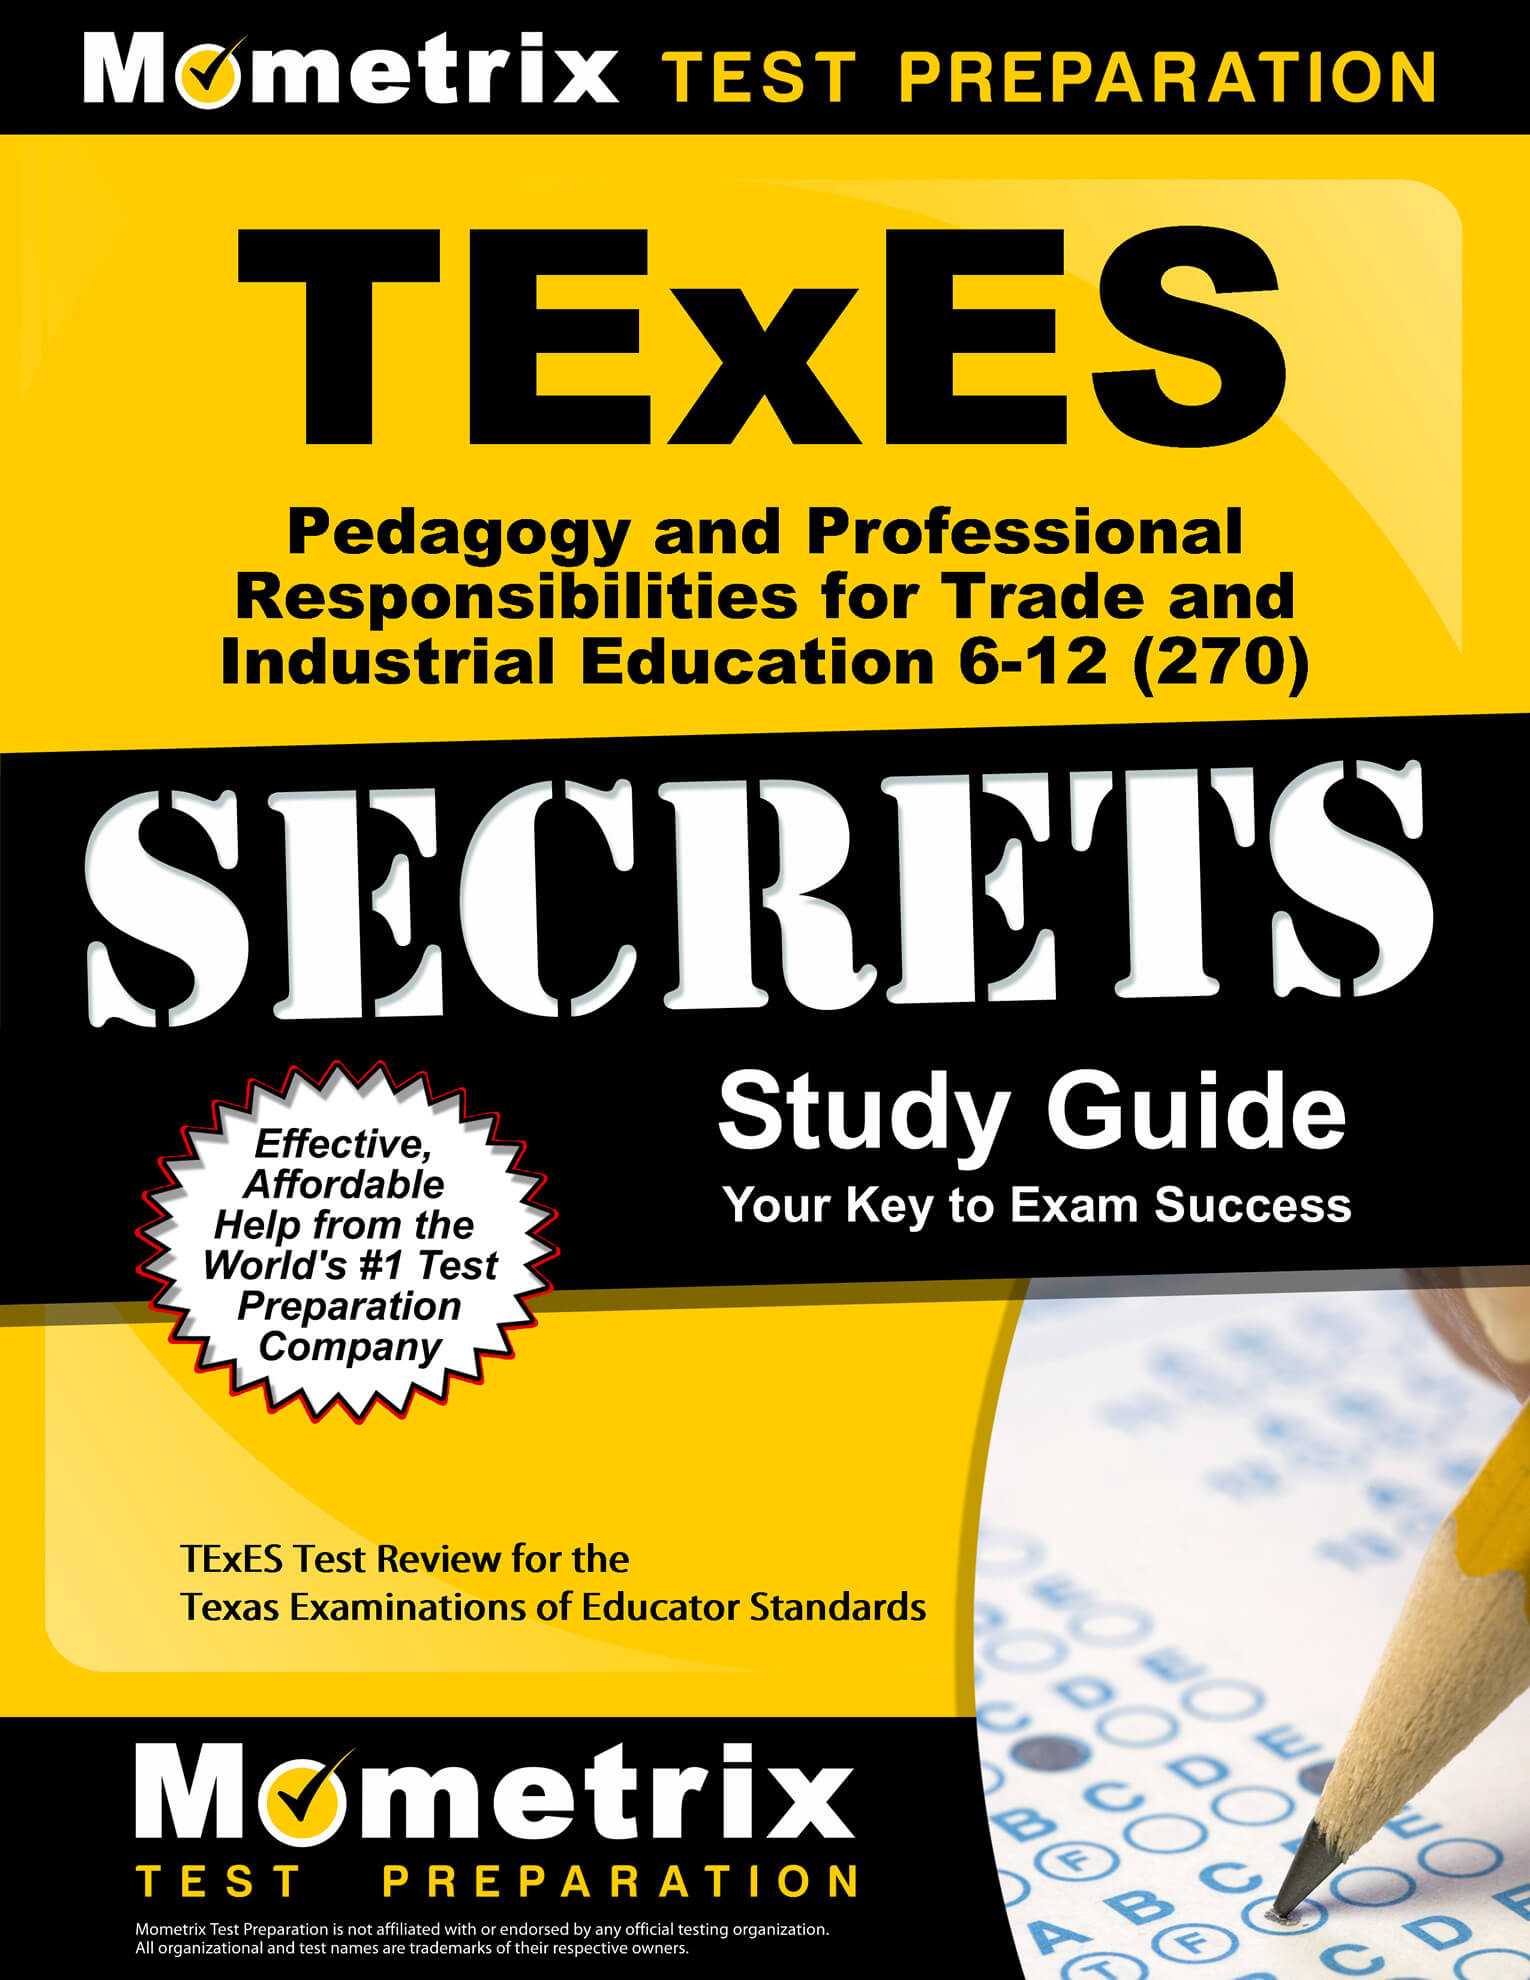 TExES Pedagogy and Professional Responsibilities for Trade and Industrial Education 6-12 Study Guide